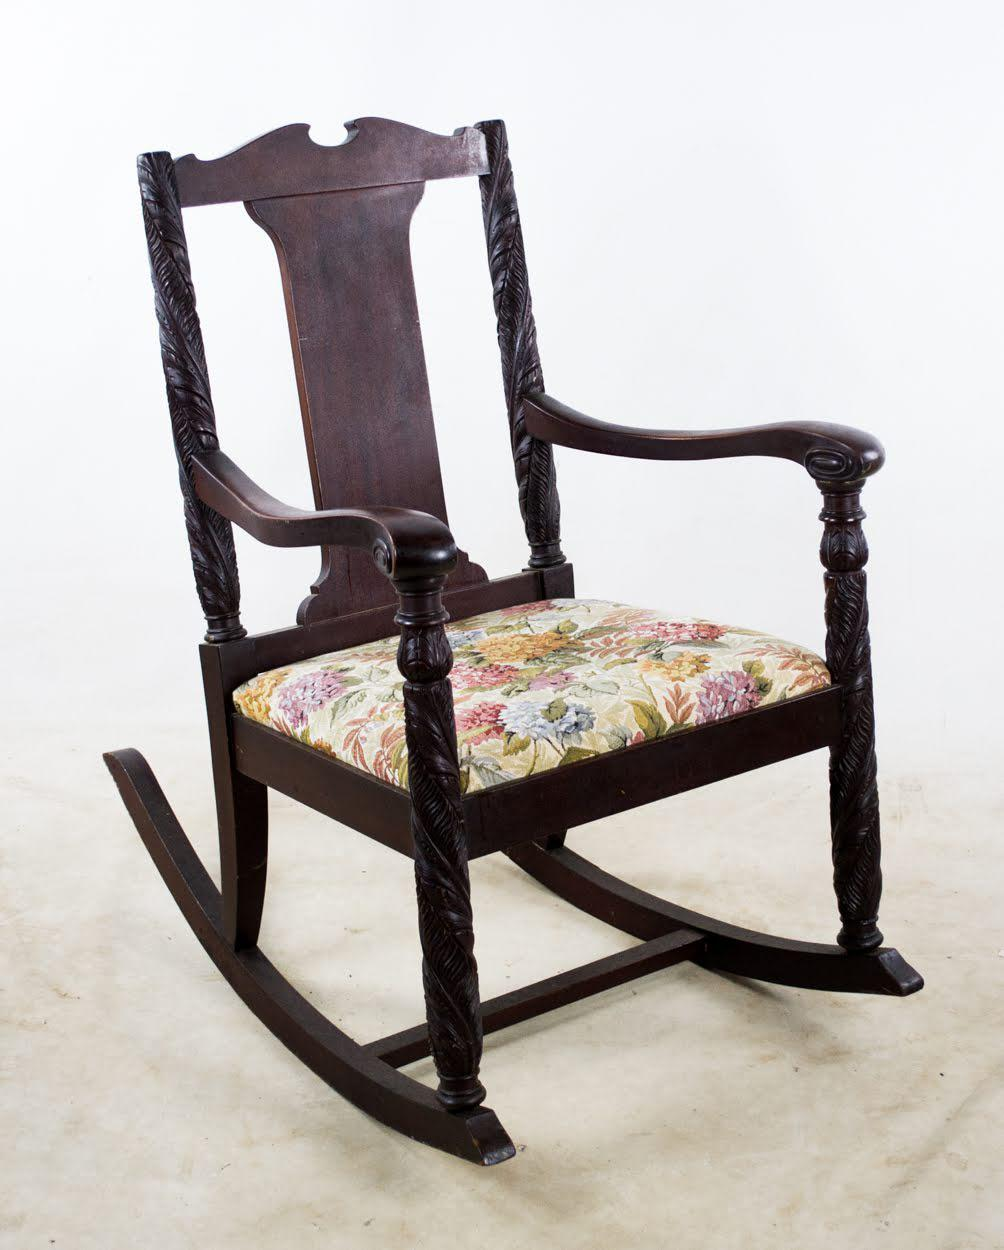 Victorian Hand Carved Rocking Chair For Sale - Image 13  sc 1 st  Chairish & Antique Aimone Mfg Co. Victorian Hand Carved Rocking Chair | Chairish